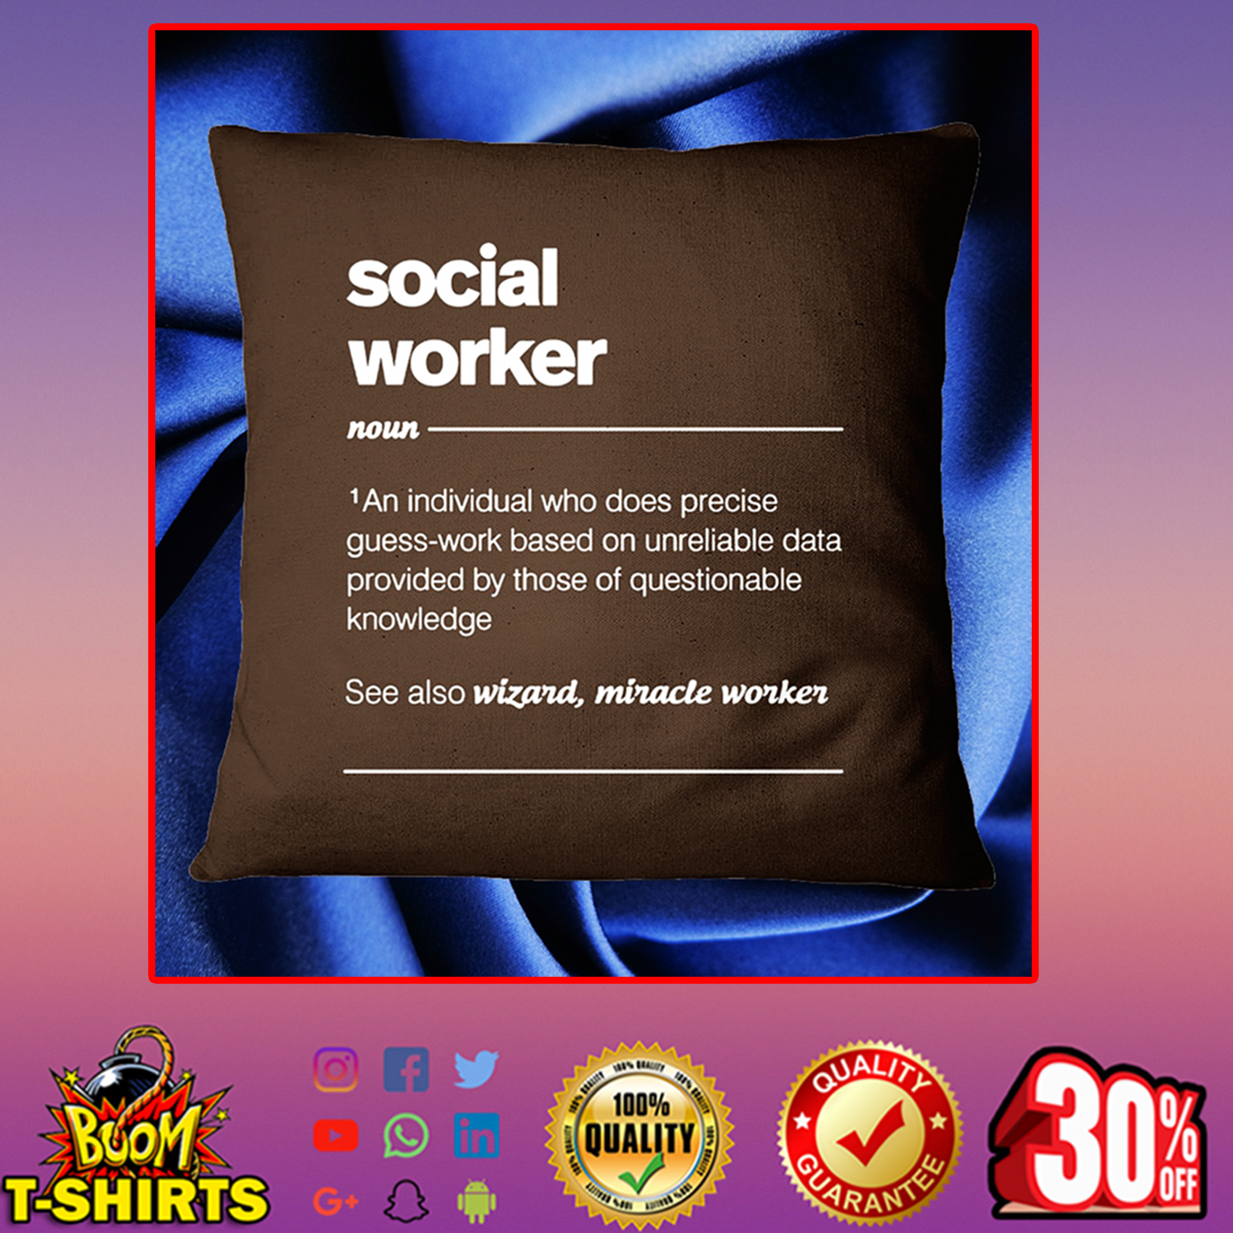 Social worker an individual who does precise guess-work based Pillowcase - chocolate